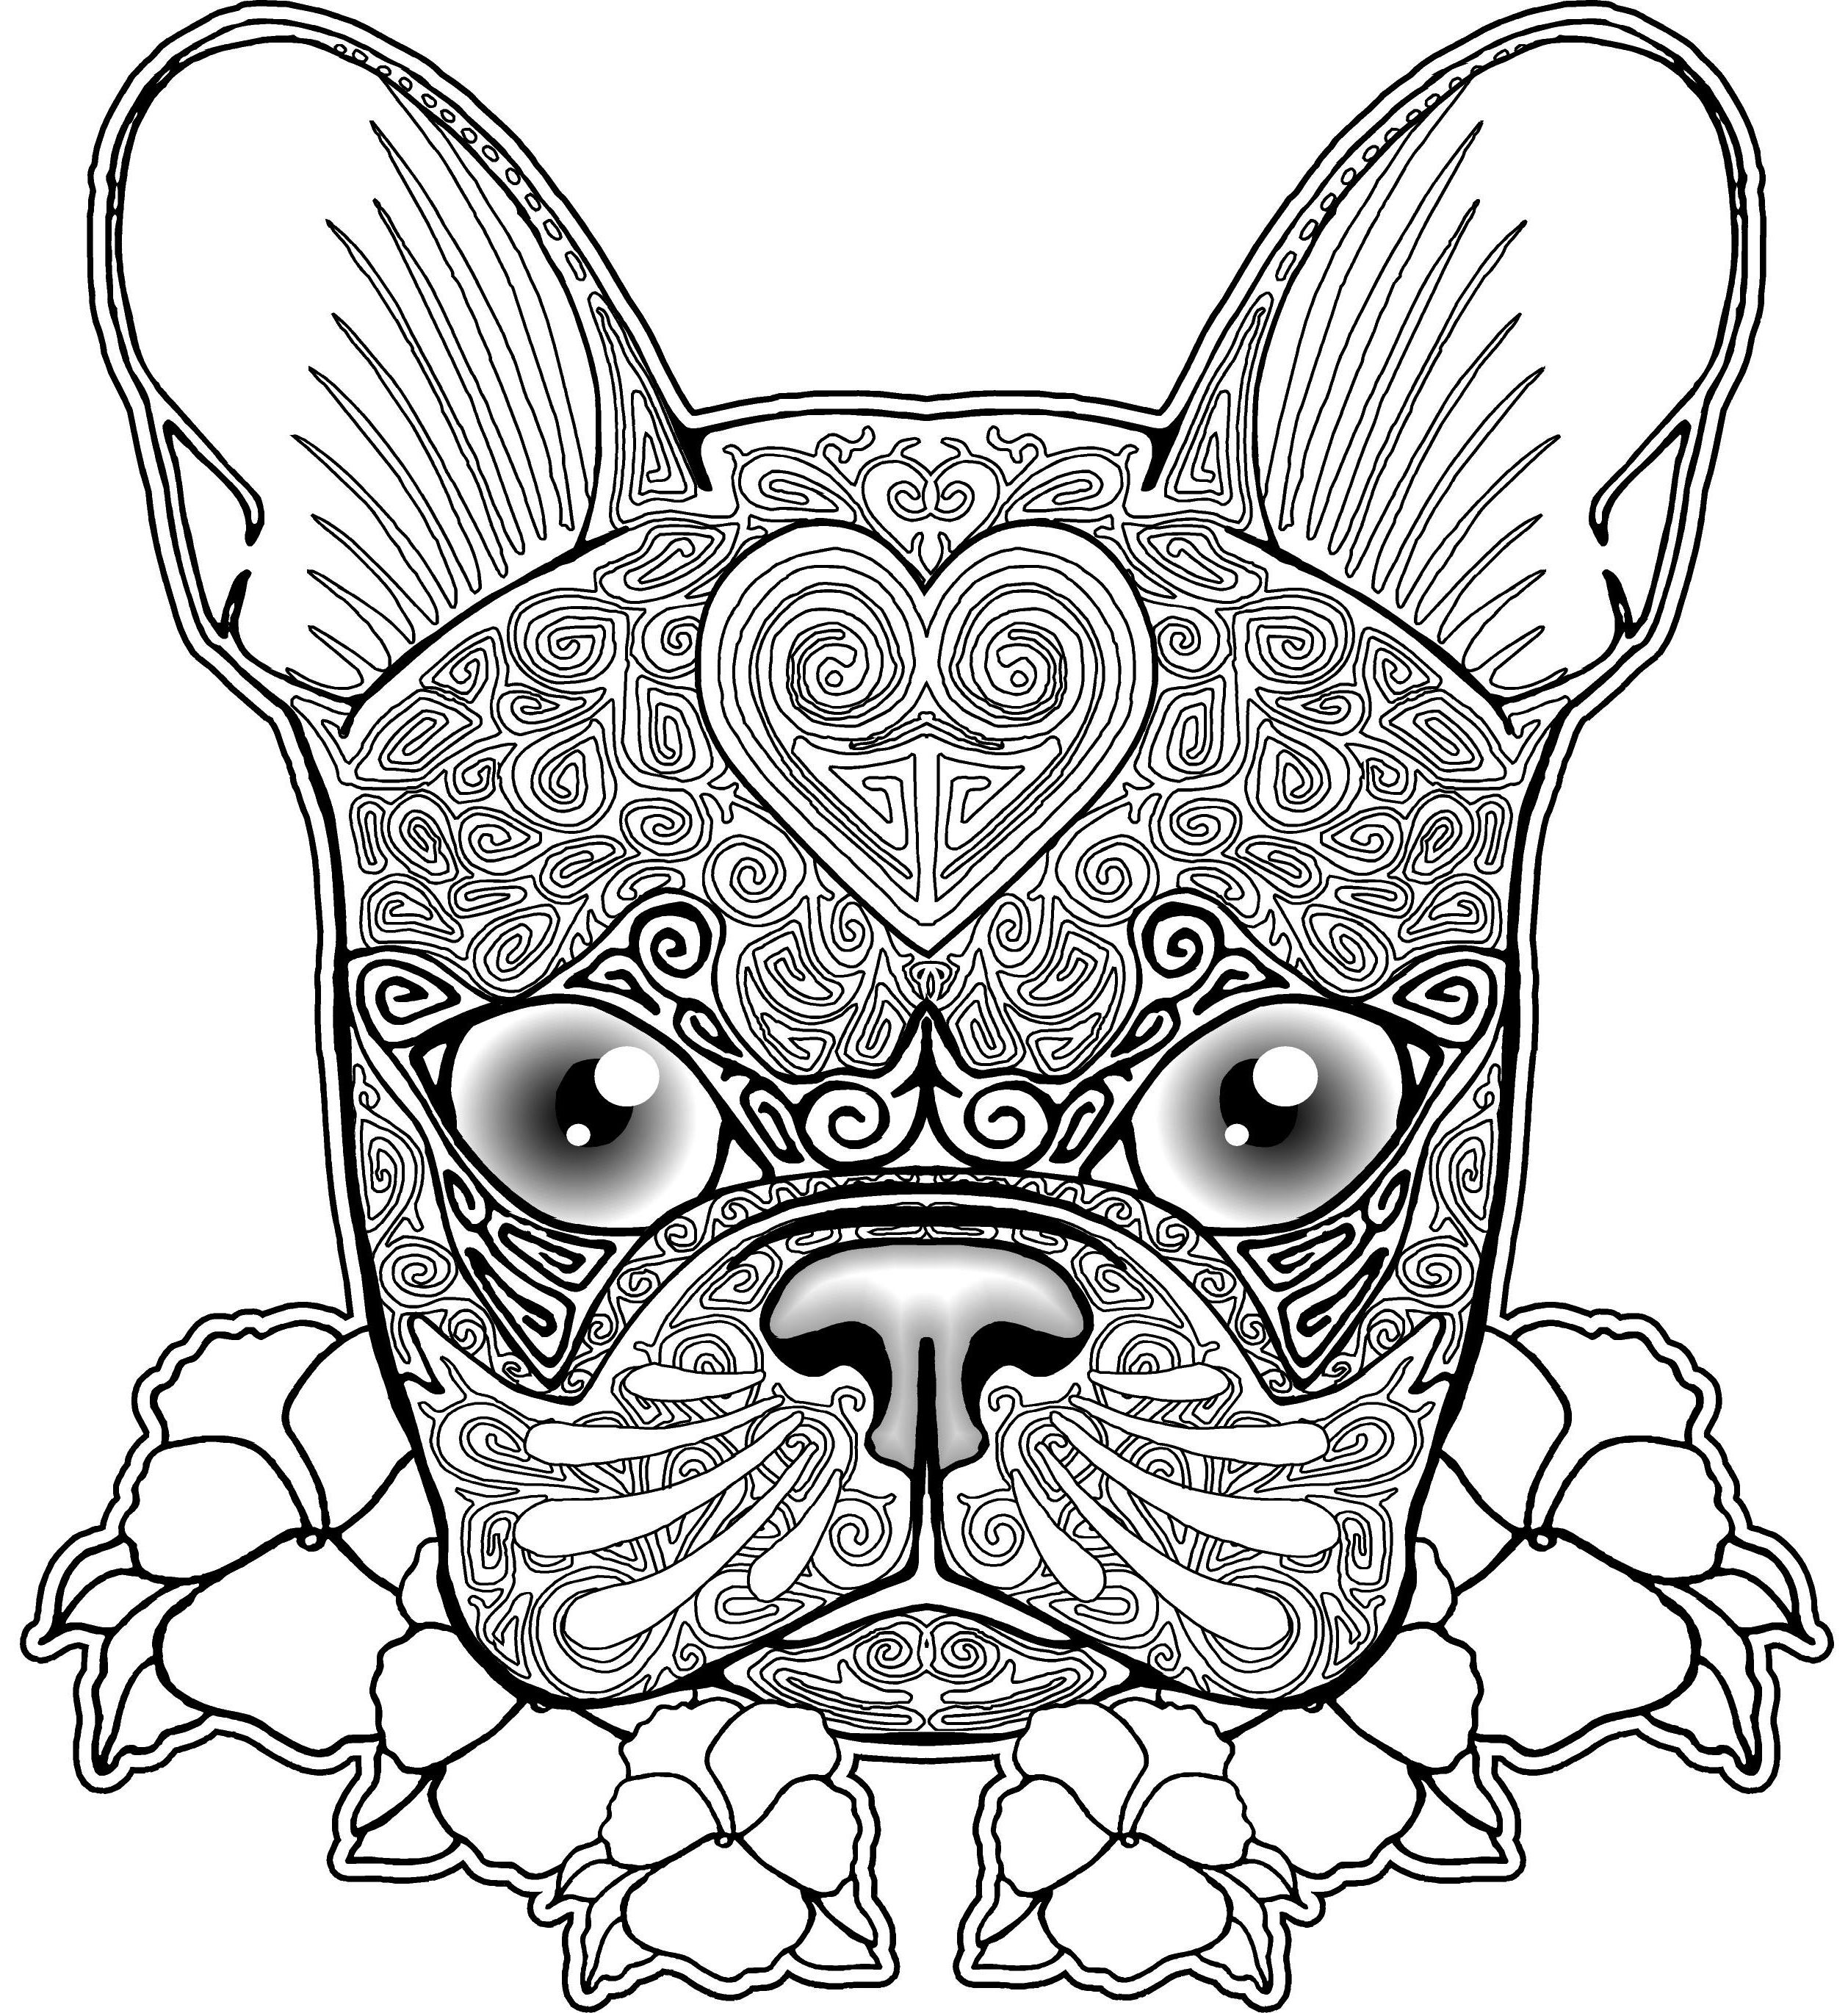 Coloring pages for adults for free - Free Bulldog Zentangle Coloring Page For Adults